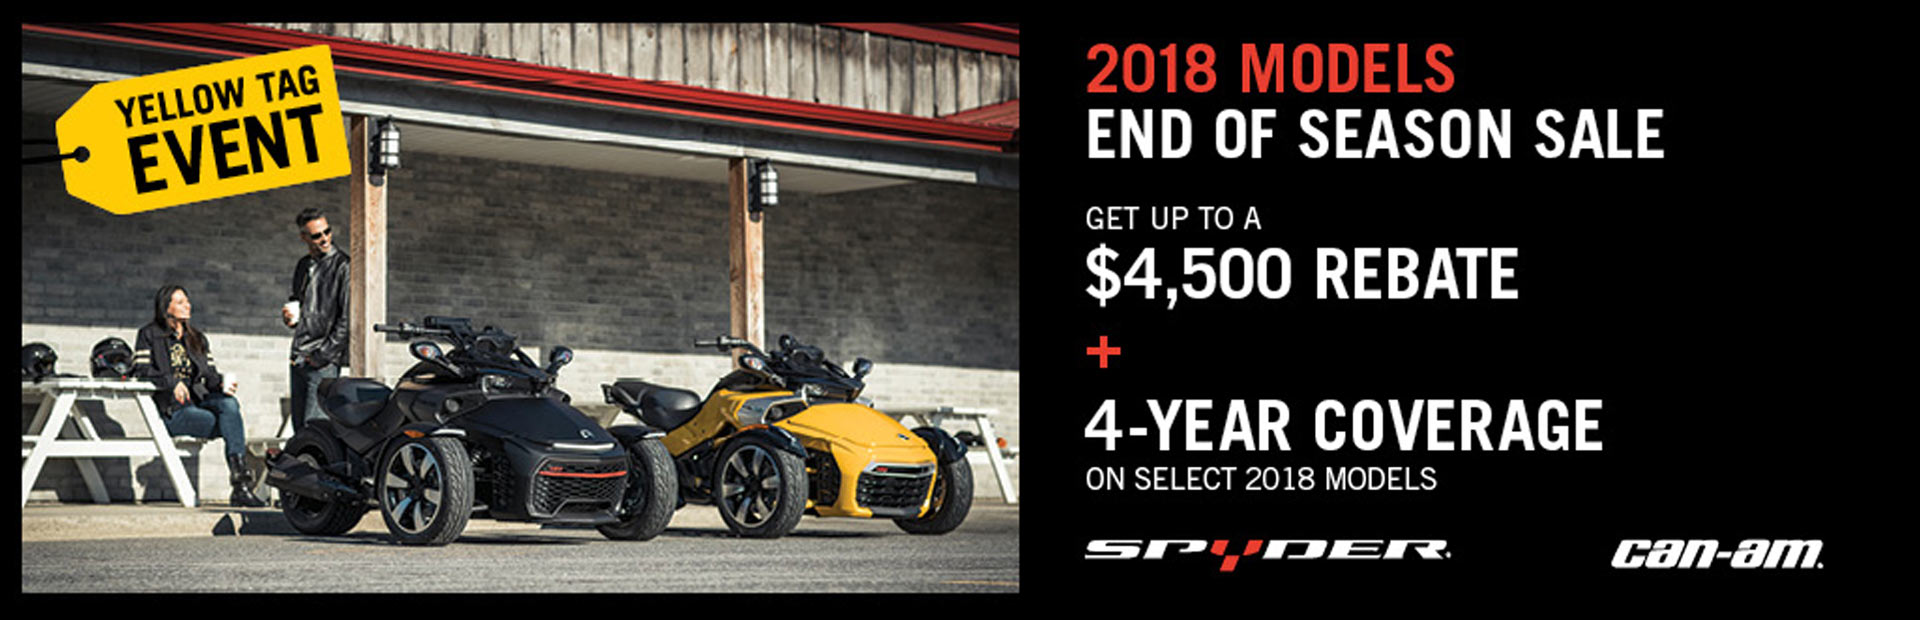 Can-Am: Yellow Tag Event - Spyder